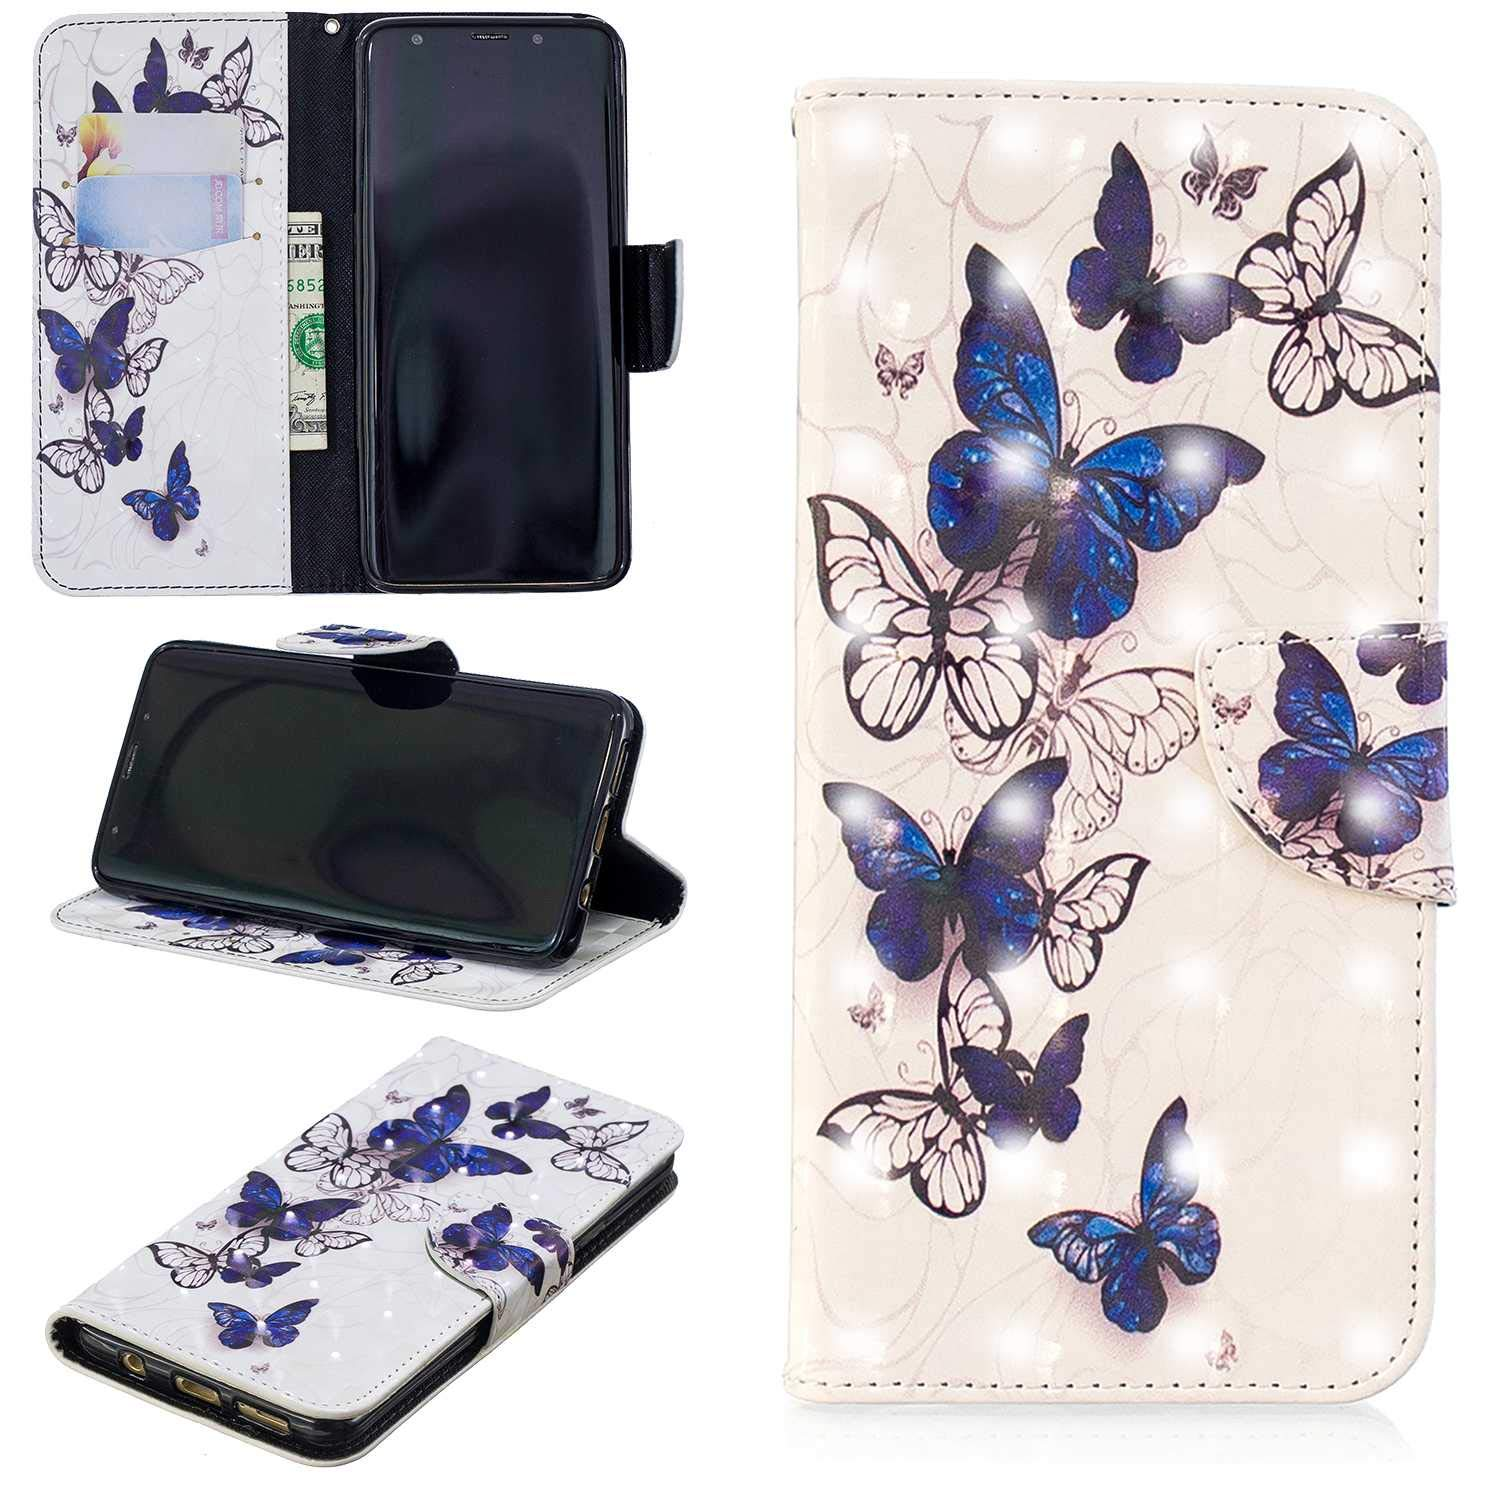 CUSKING Galaxy S9 Plus Case, Premium 3D Design Wallet Case Stand Flip Case with Card Holders and Magnetic Closure, Multi-Functional Shockproof Case for Samsung Galaxy S9 Plus - White, Butterfly